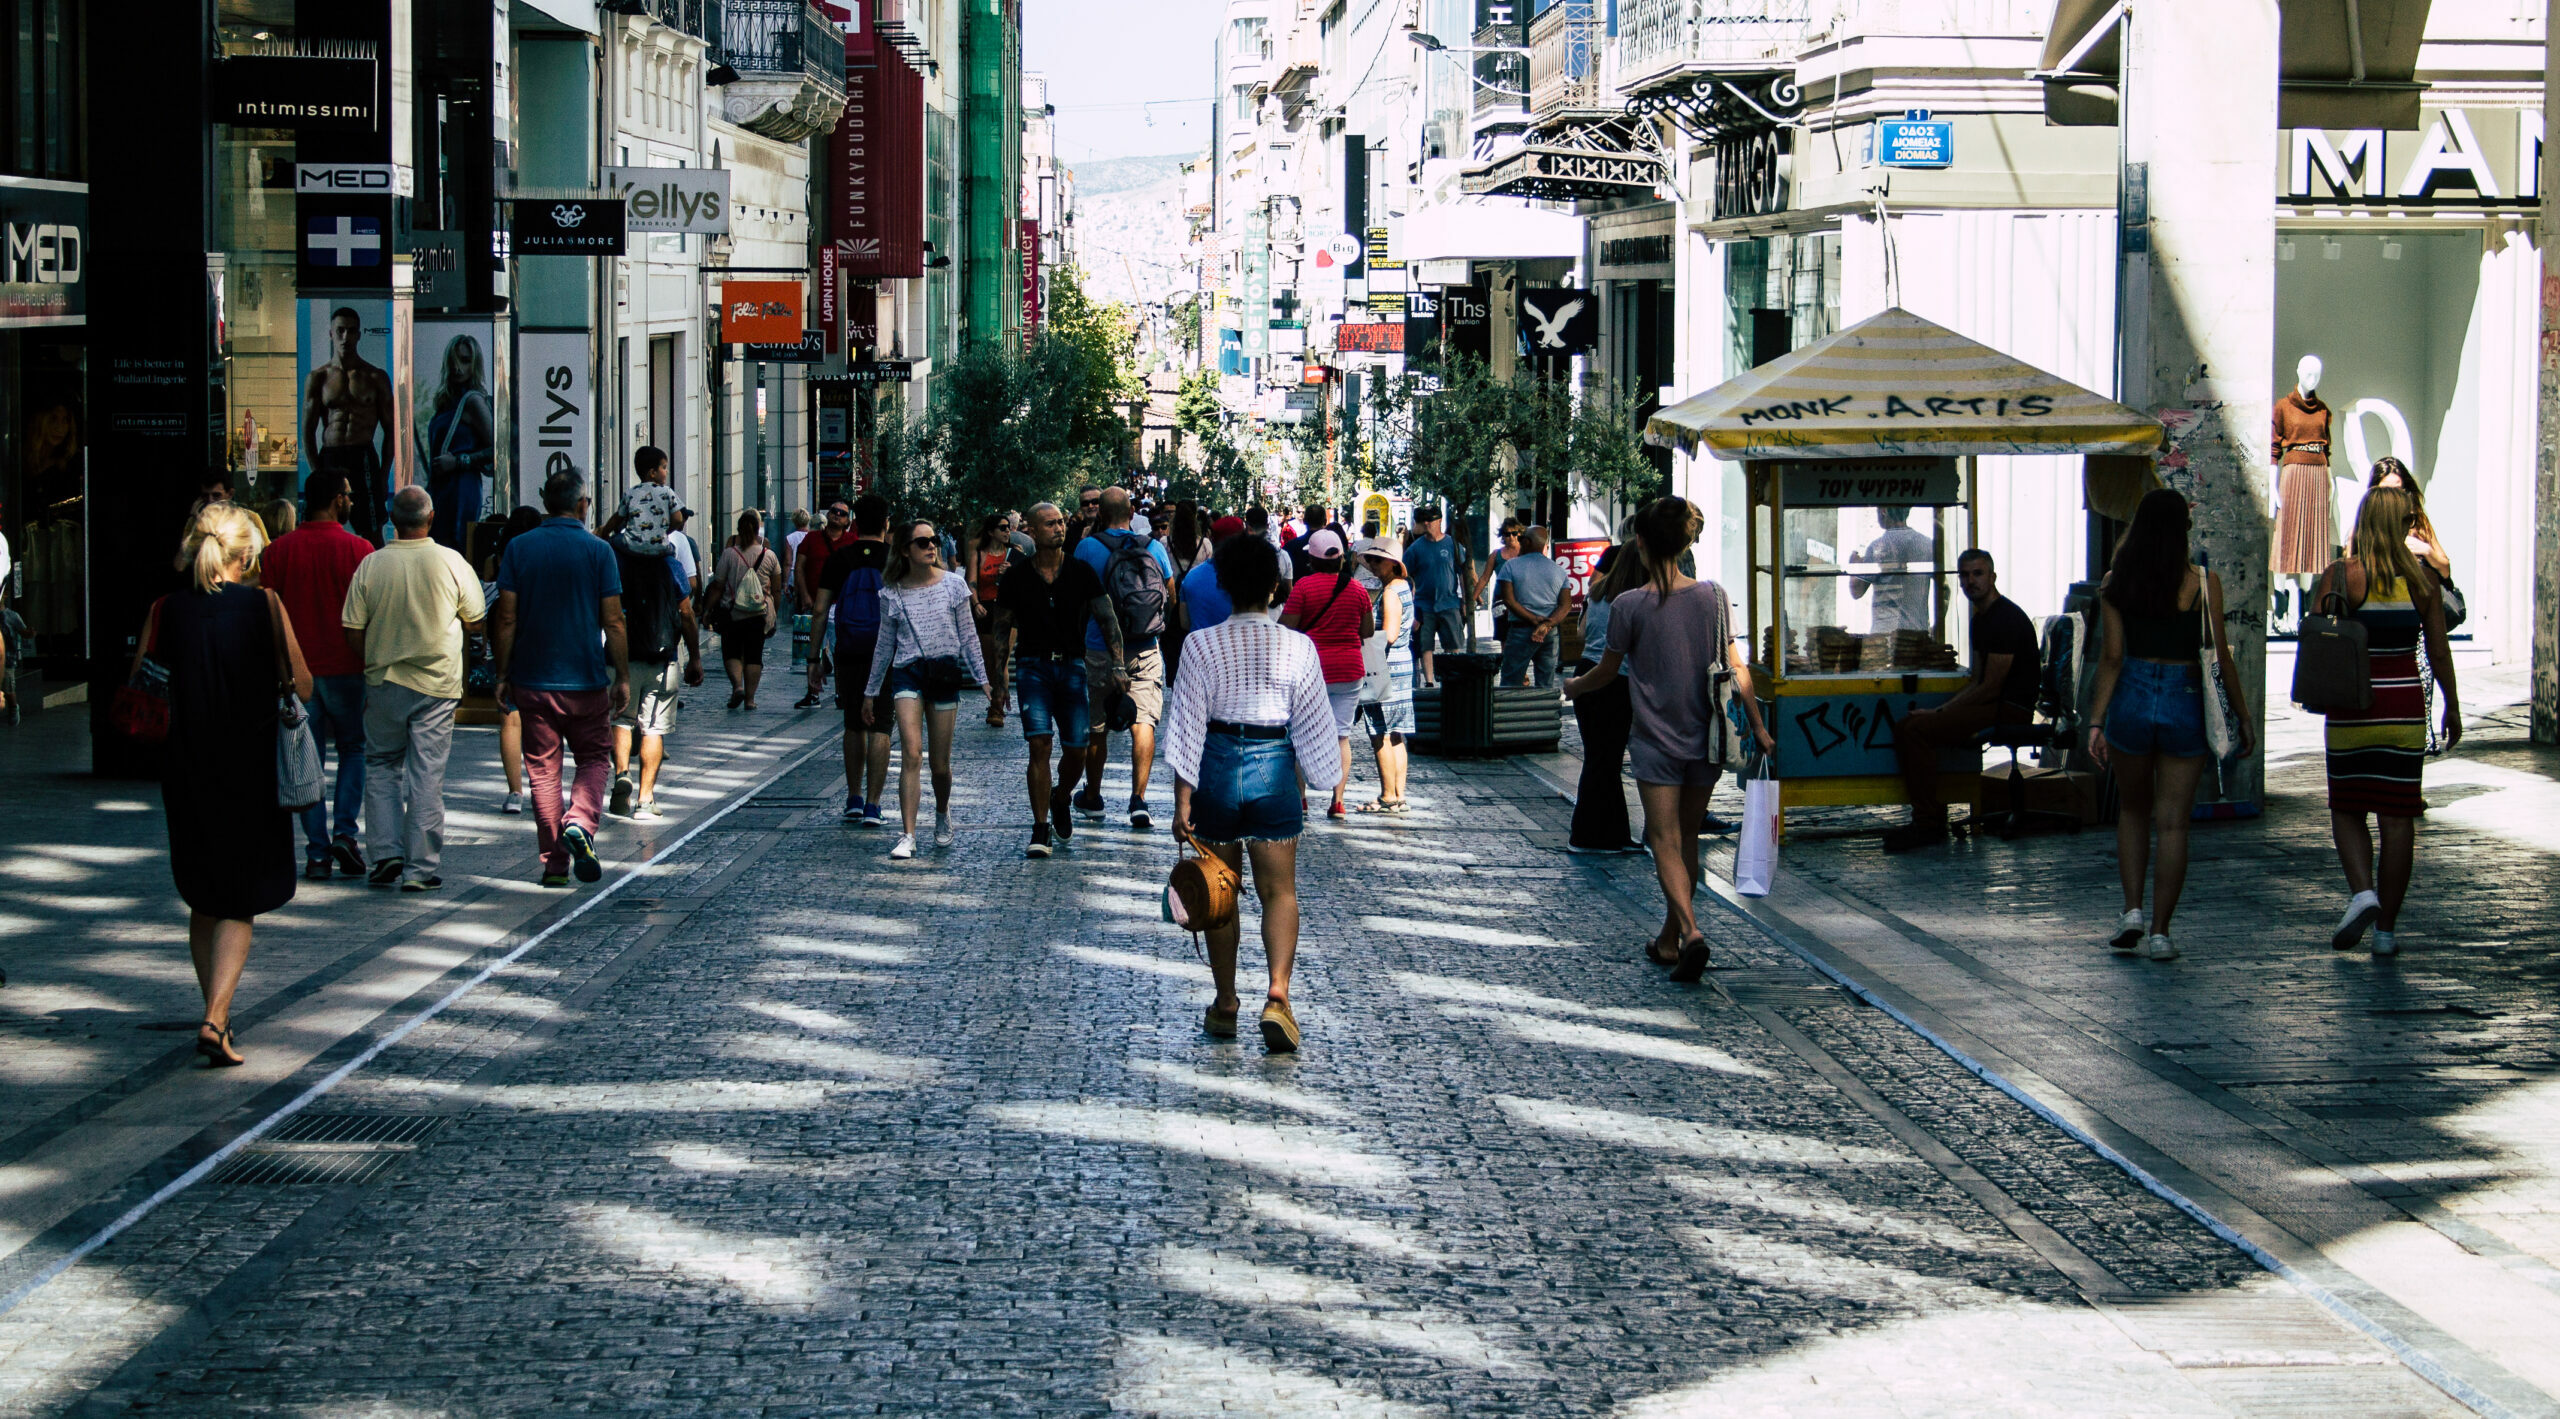 Ermou: This street was made for walkin'